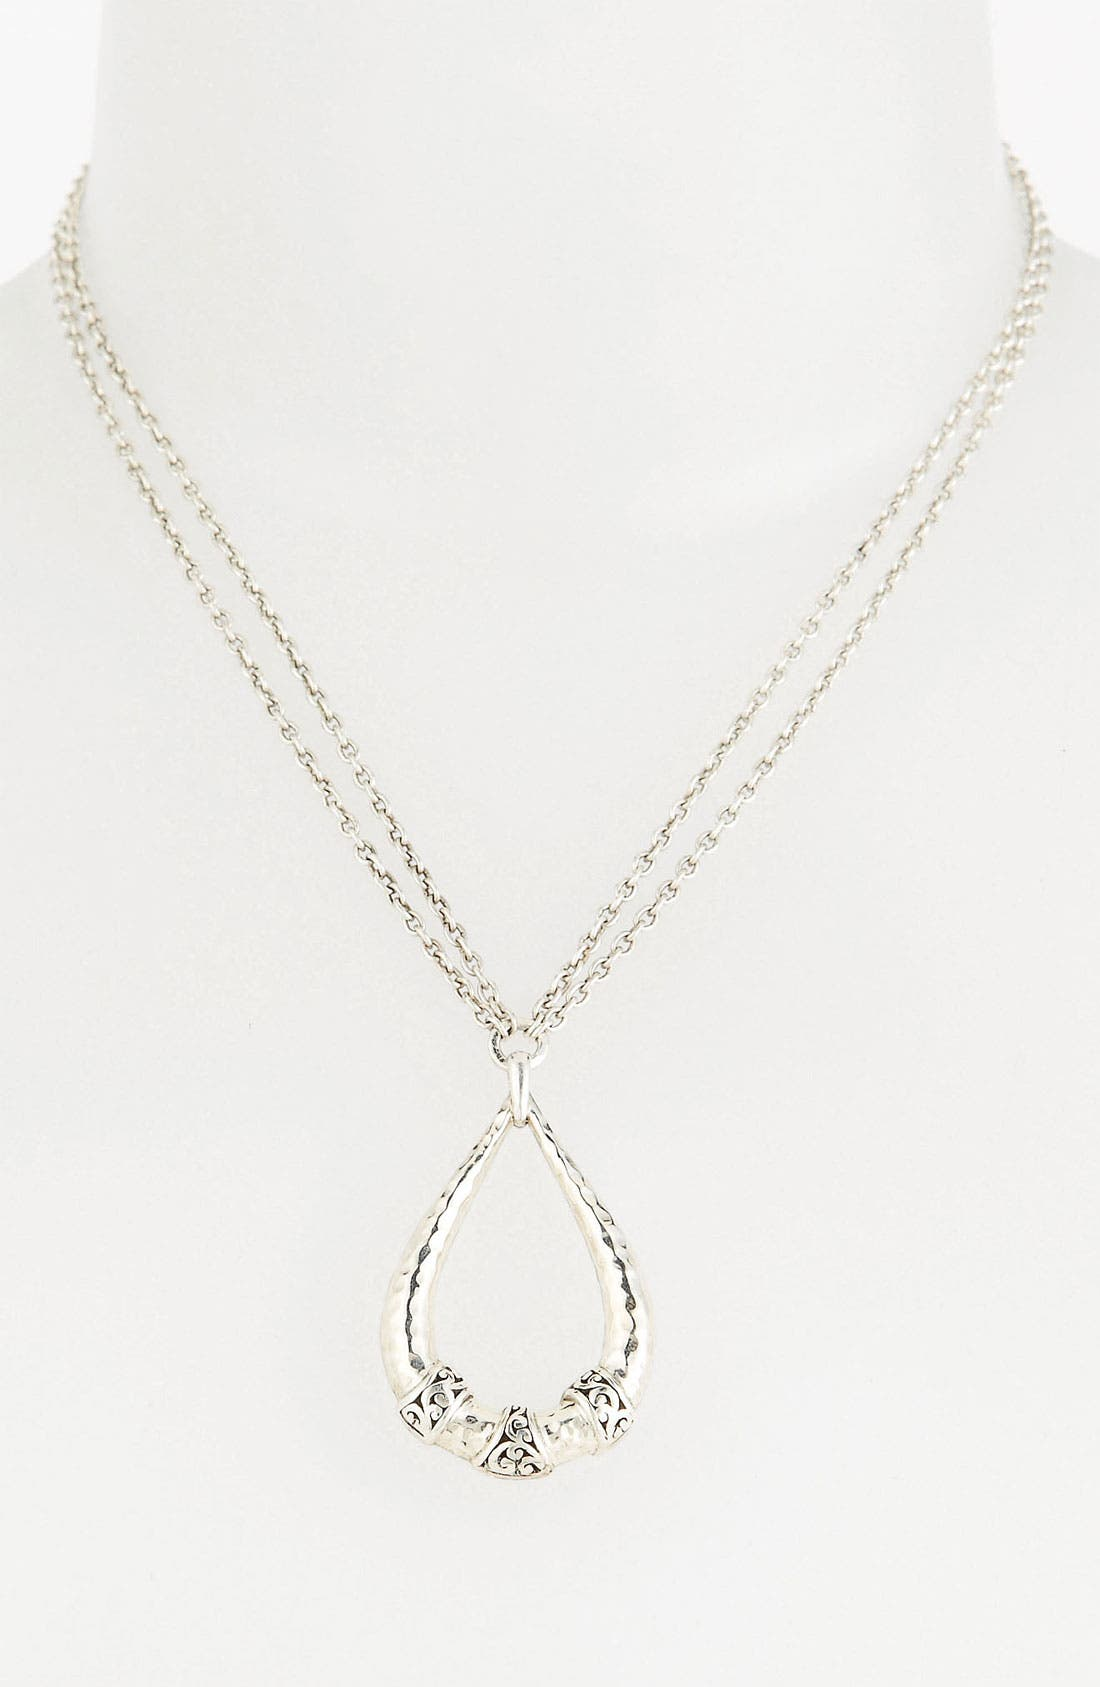 Alternate Image 1 Selected - Lois Hill 'Classy Cutout Waves' Teardrop Pendant Necklace